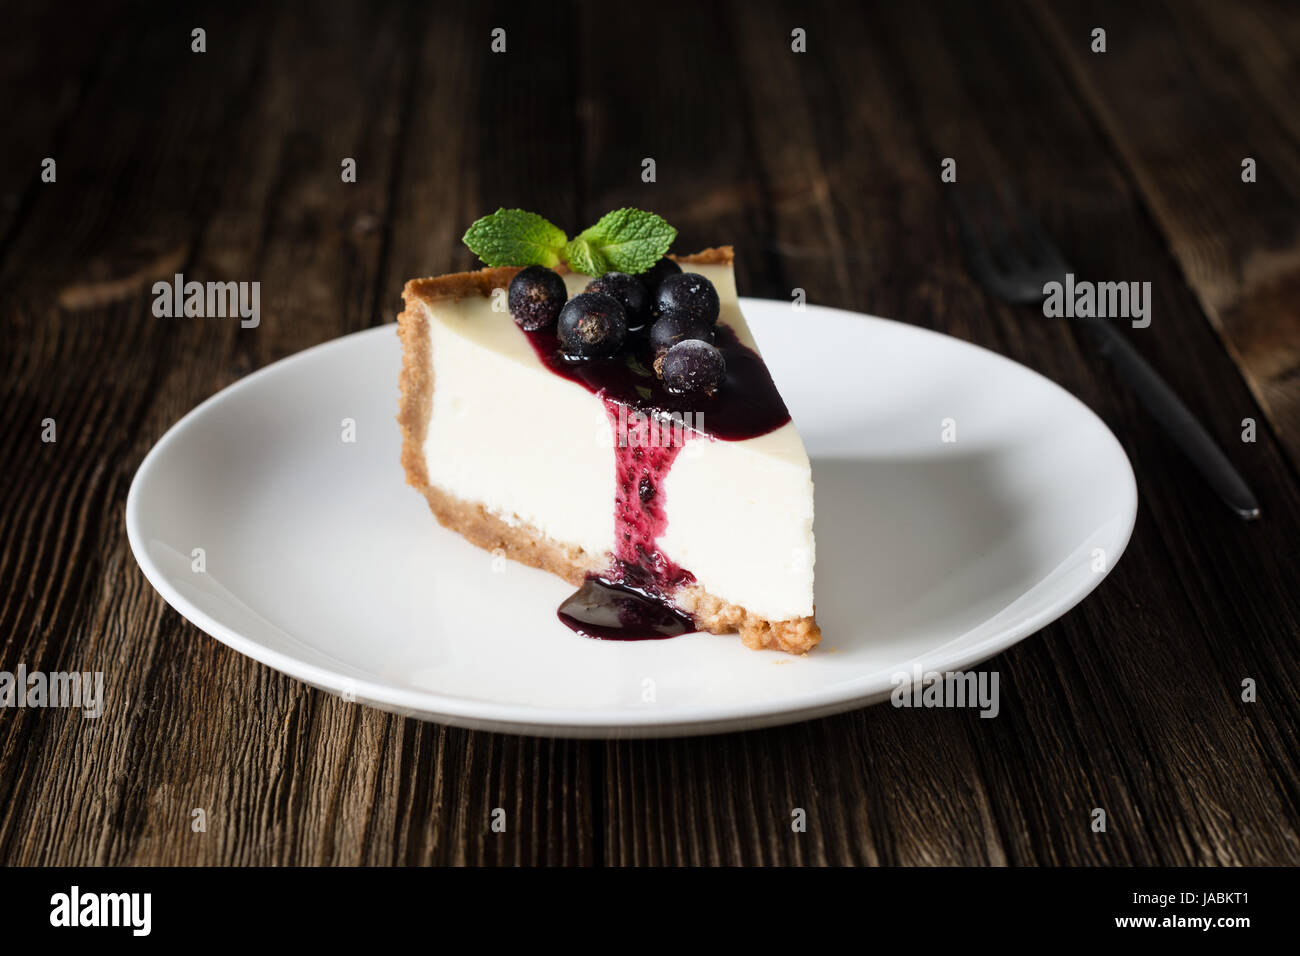 Piece of cheesecake with black currant and blueberry sauce on white plate on wooden table. Closeup view Stock Photo